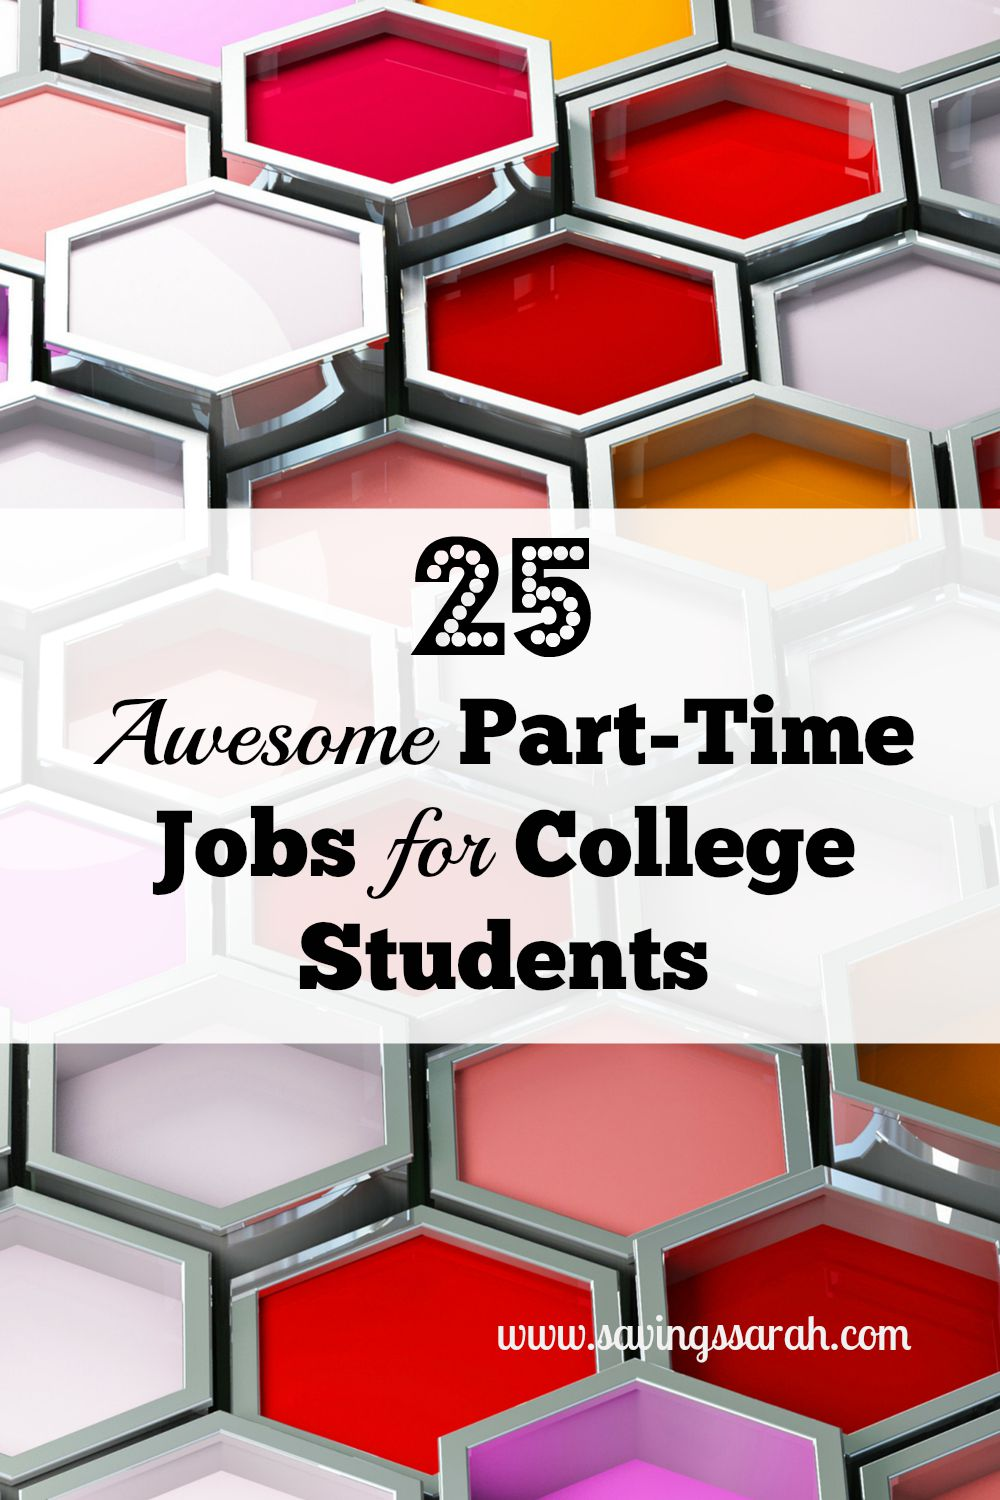 17 Jobs For 17 Year Olds That Will Pay For College: 17 Hot, In Demand Side Jobs For Extra Cash